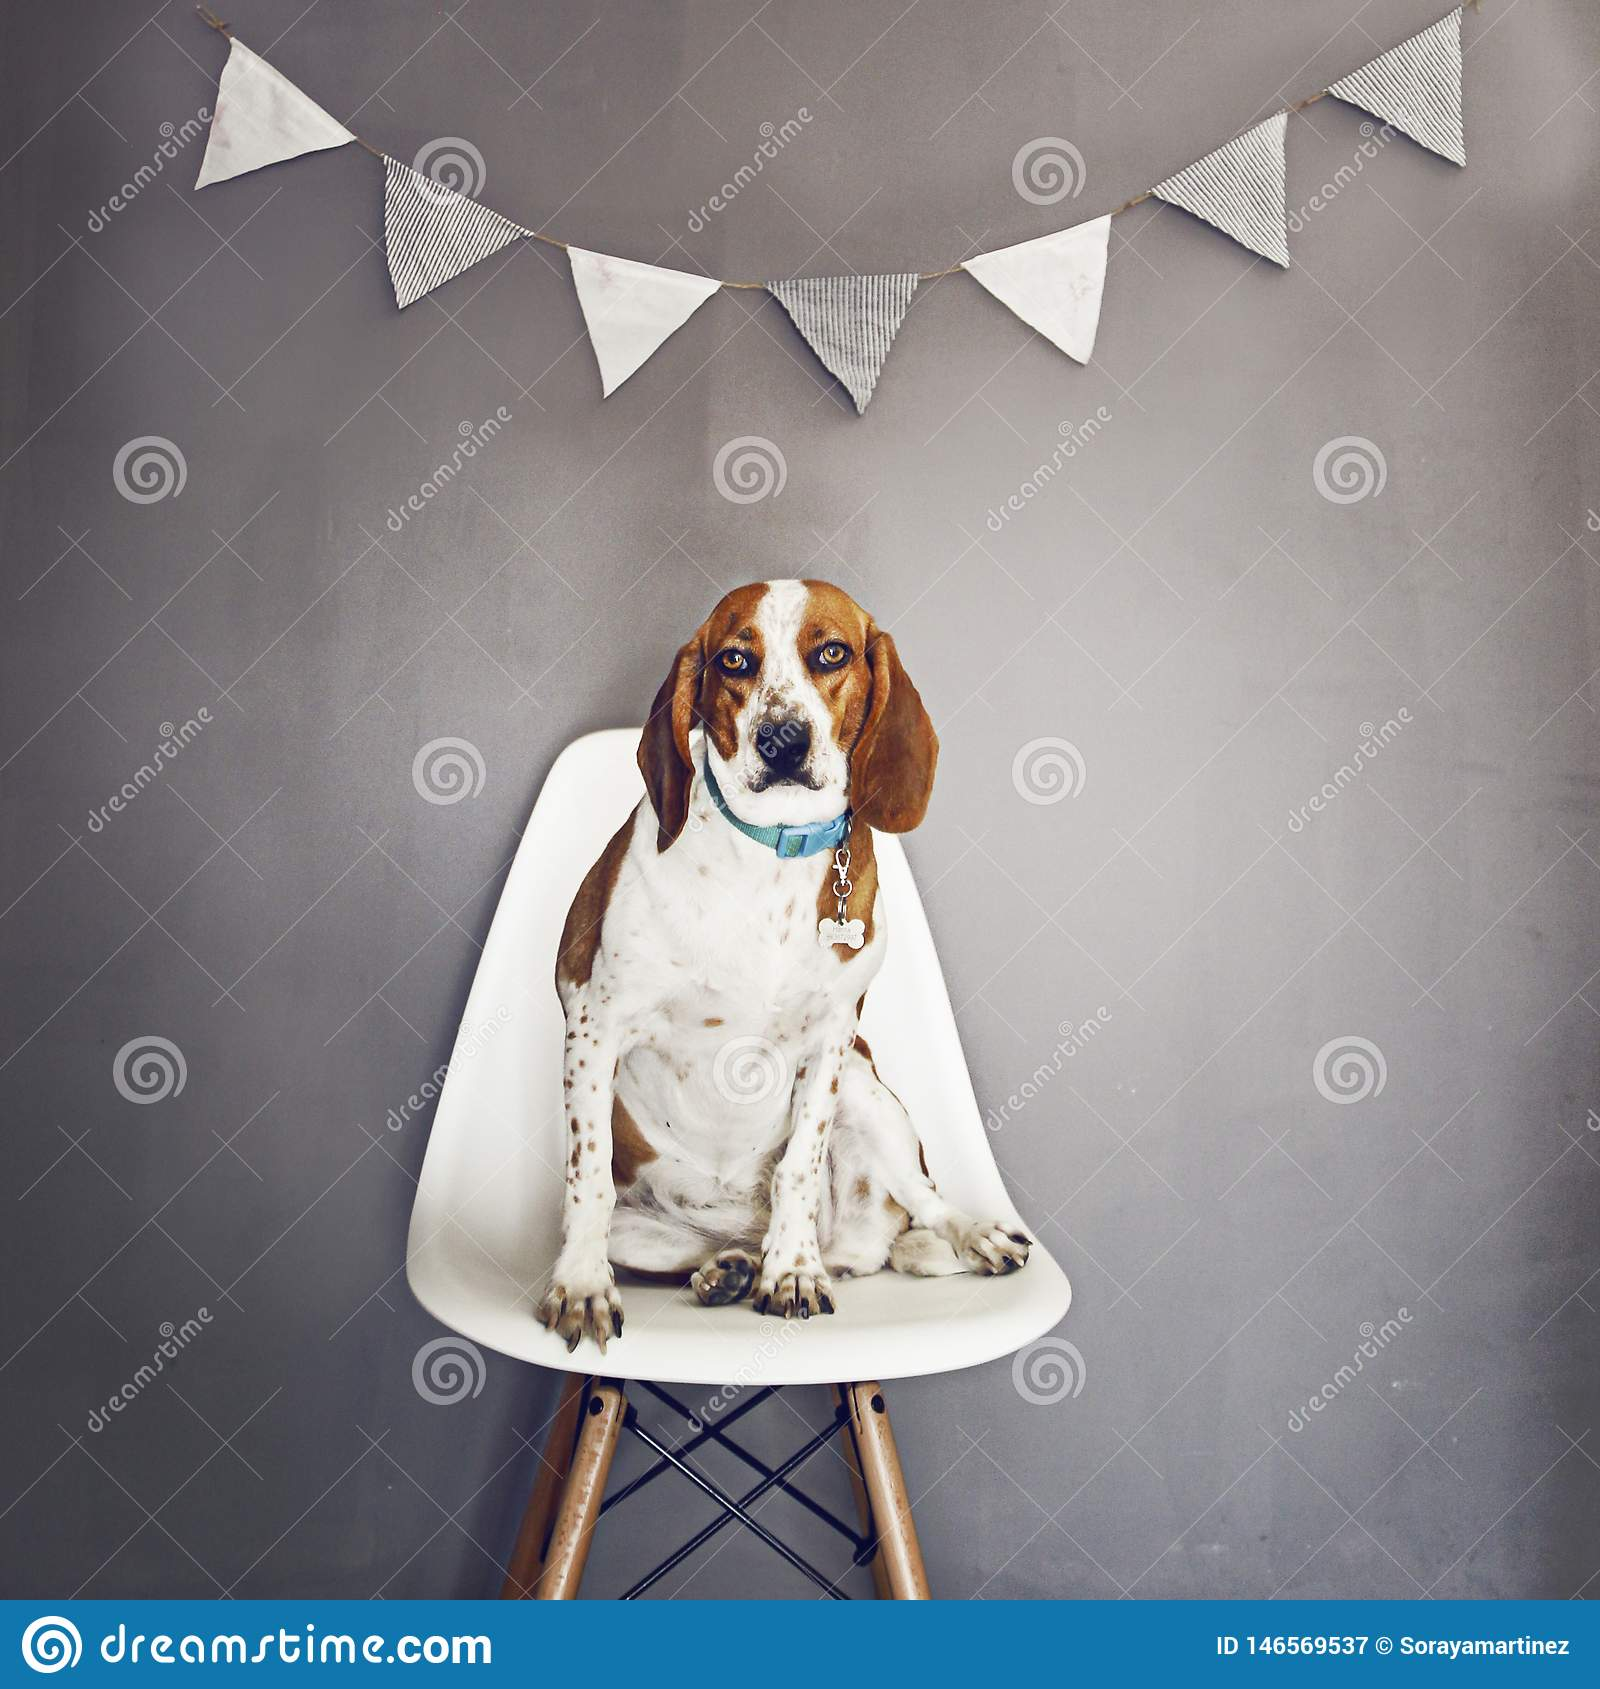 PORTRAIT OF A DOG IN A CHAIR